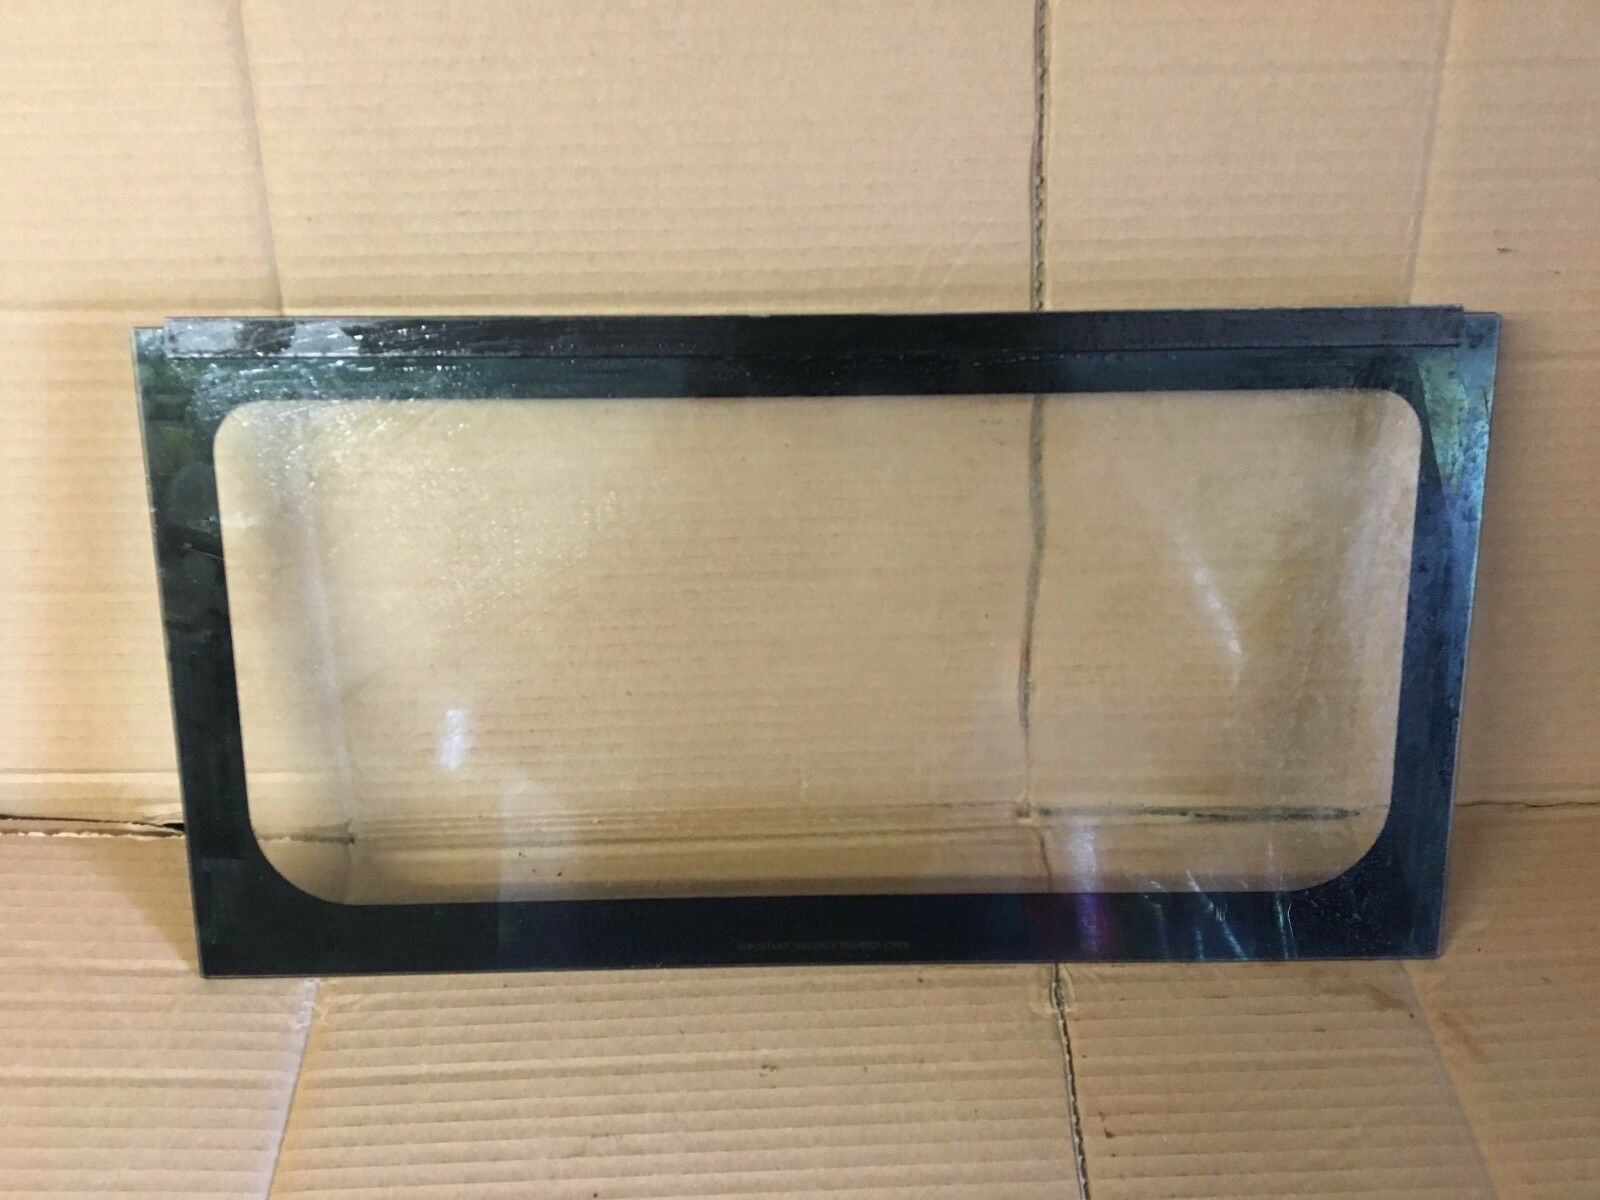 Hotpoint Cooker Oven Hud61k Hud61 Top Oven Grill Inner Door Glass 50